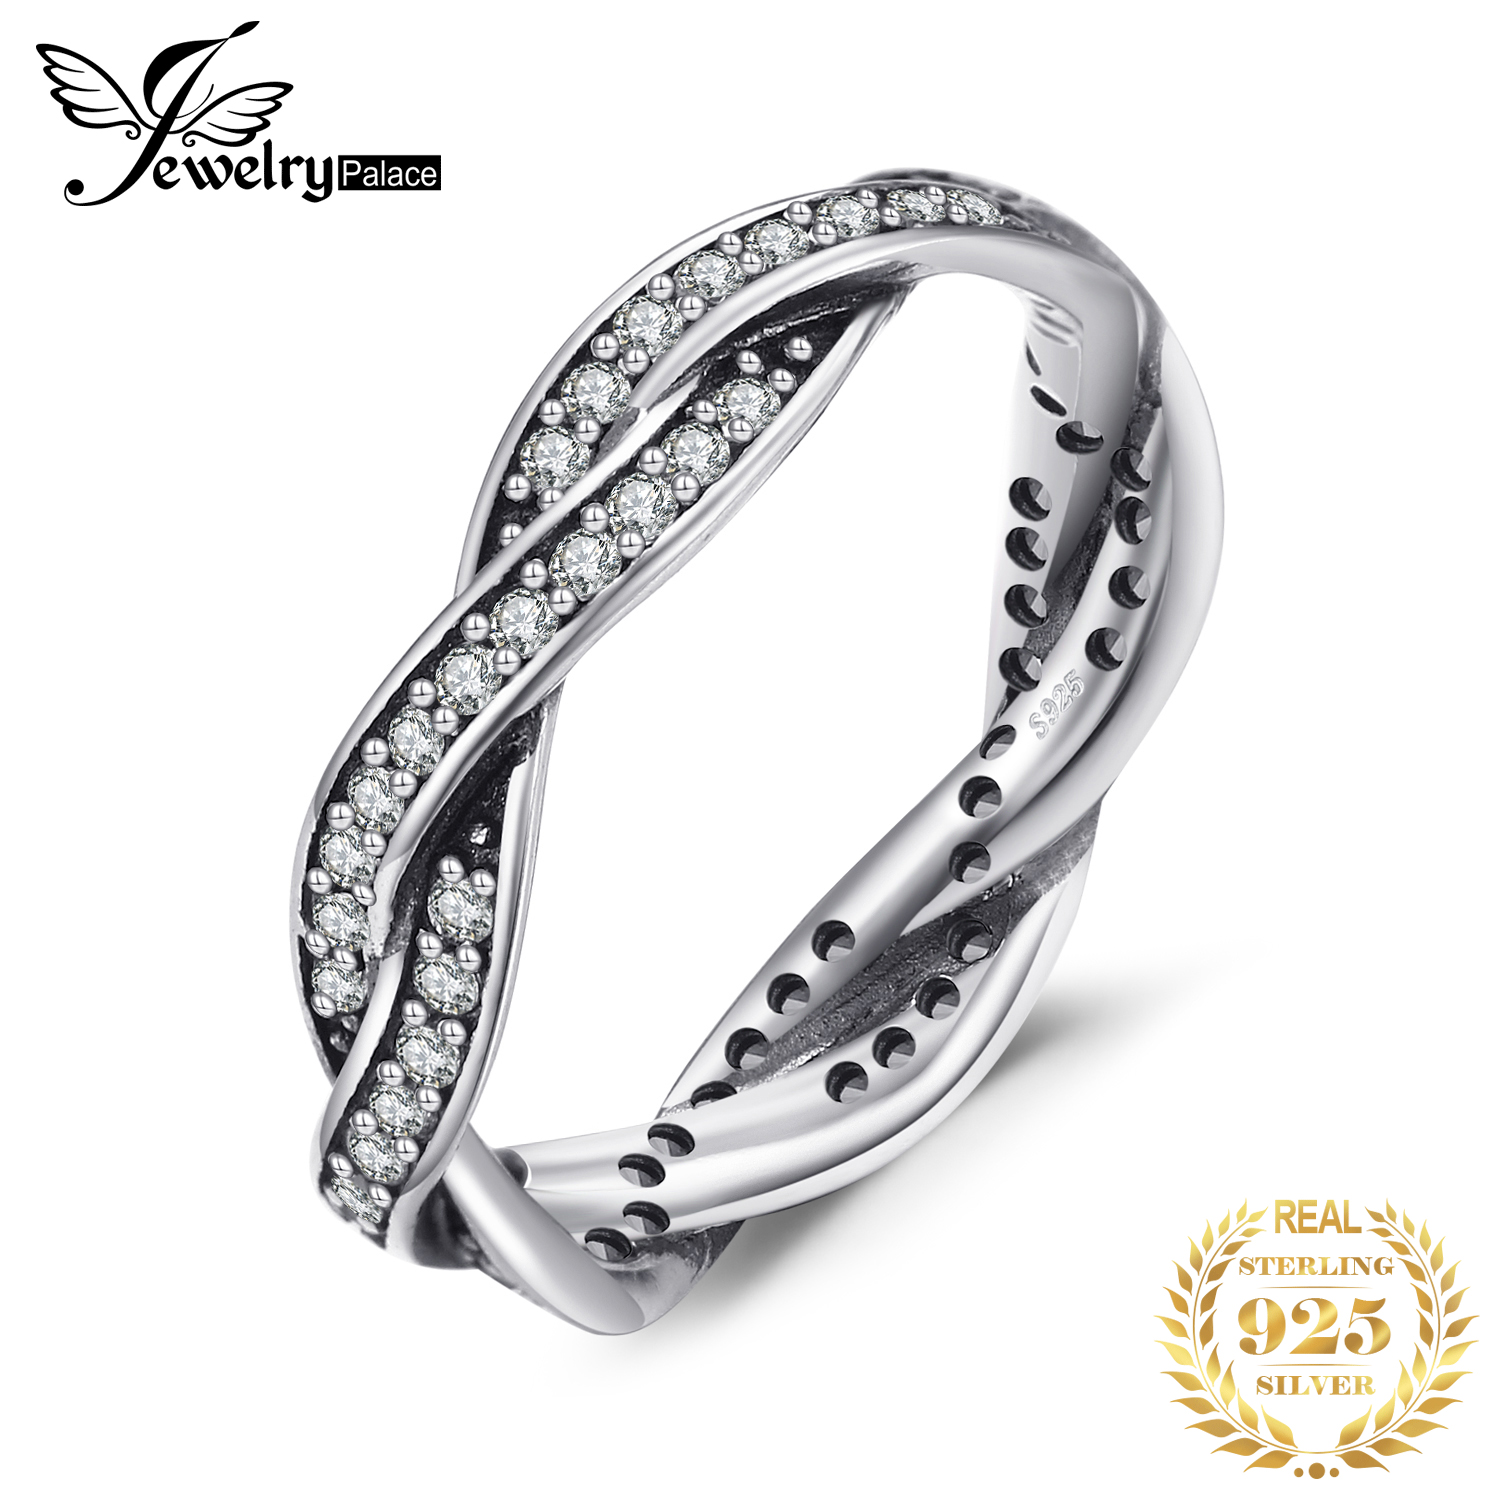 Jewelrypalace 925 Sterling Silver Rings Cubic Zirconia Infinity Wedding Band Bridal Jewelry New Arrival Gifts For Her Fashion